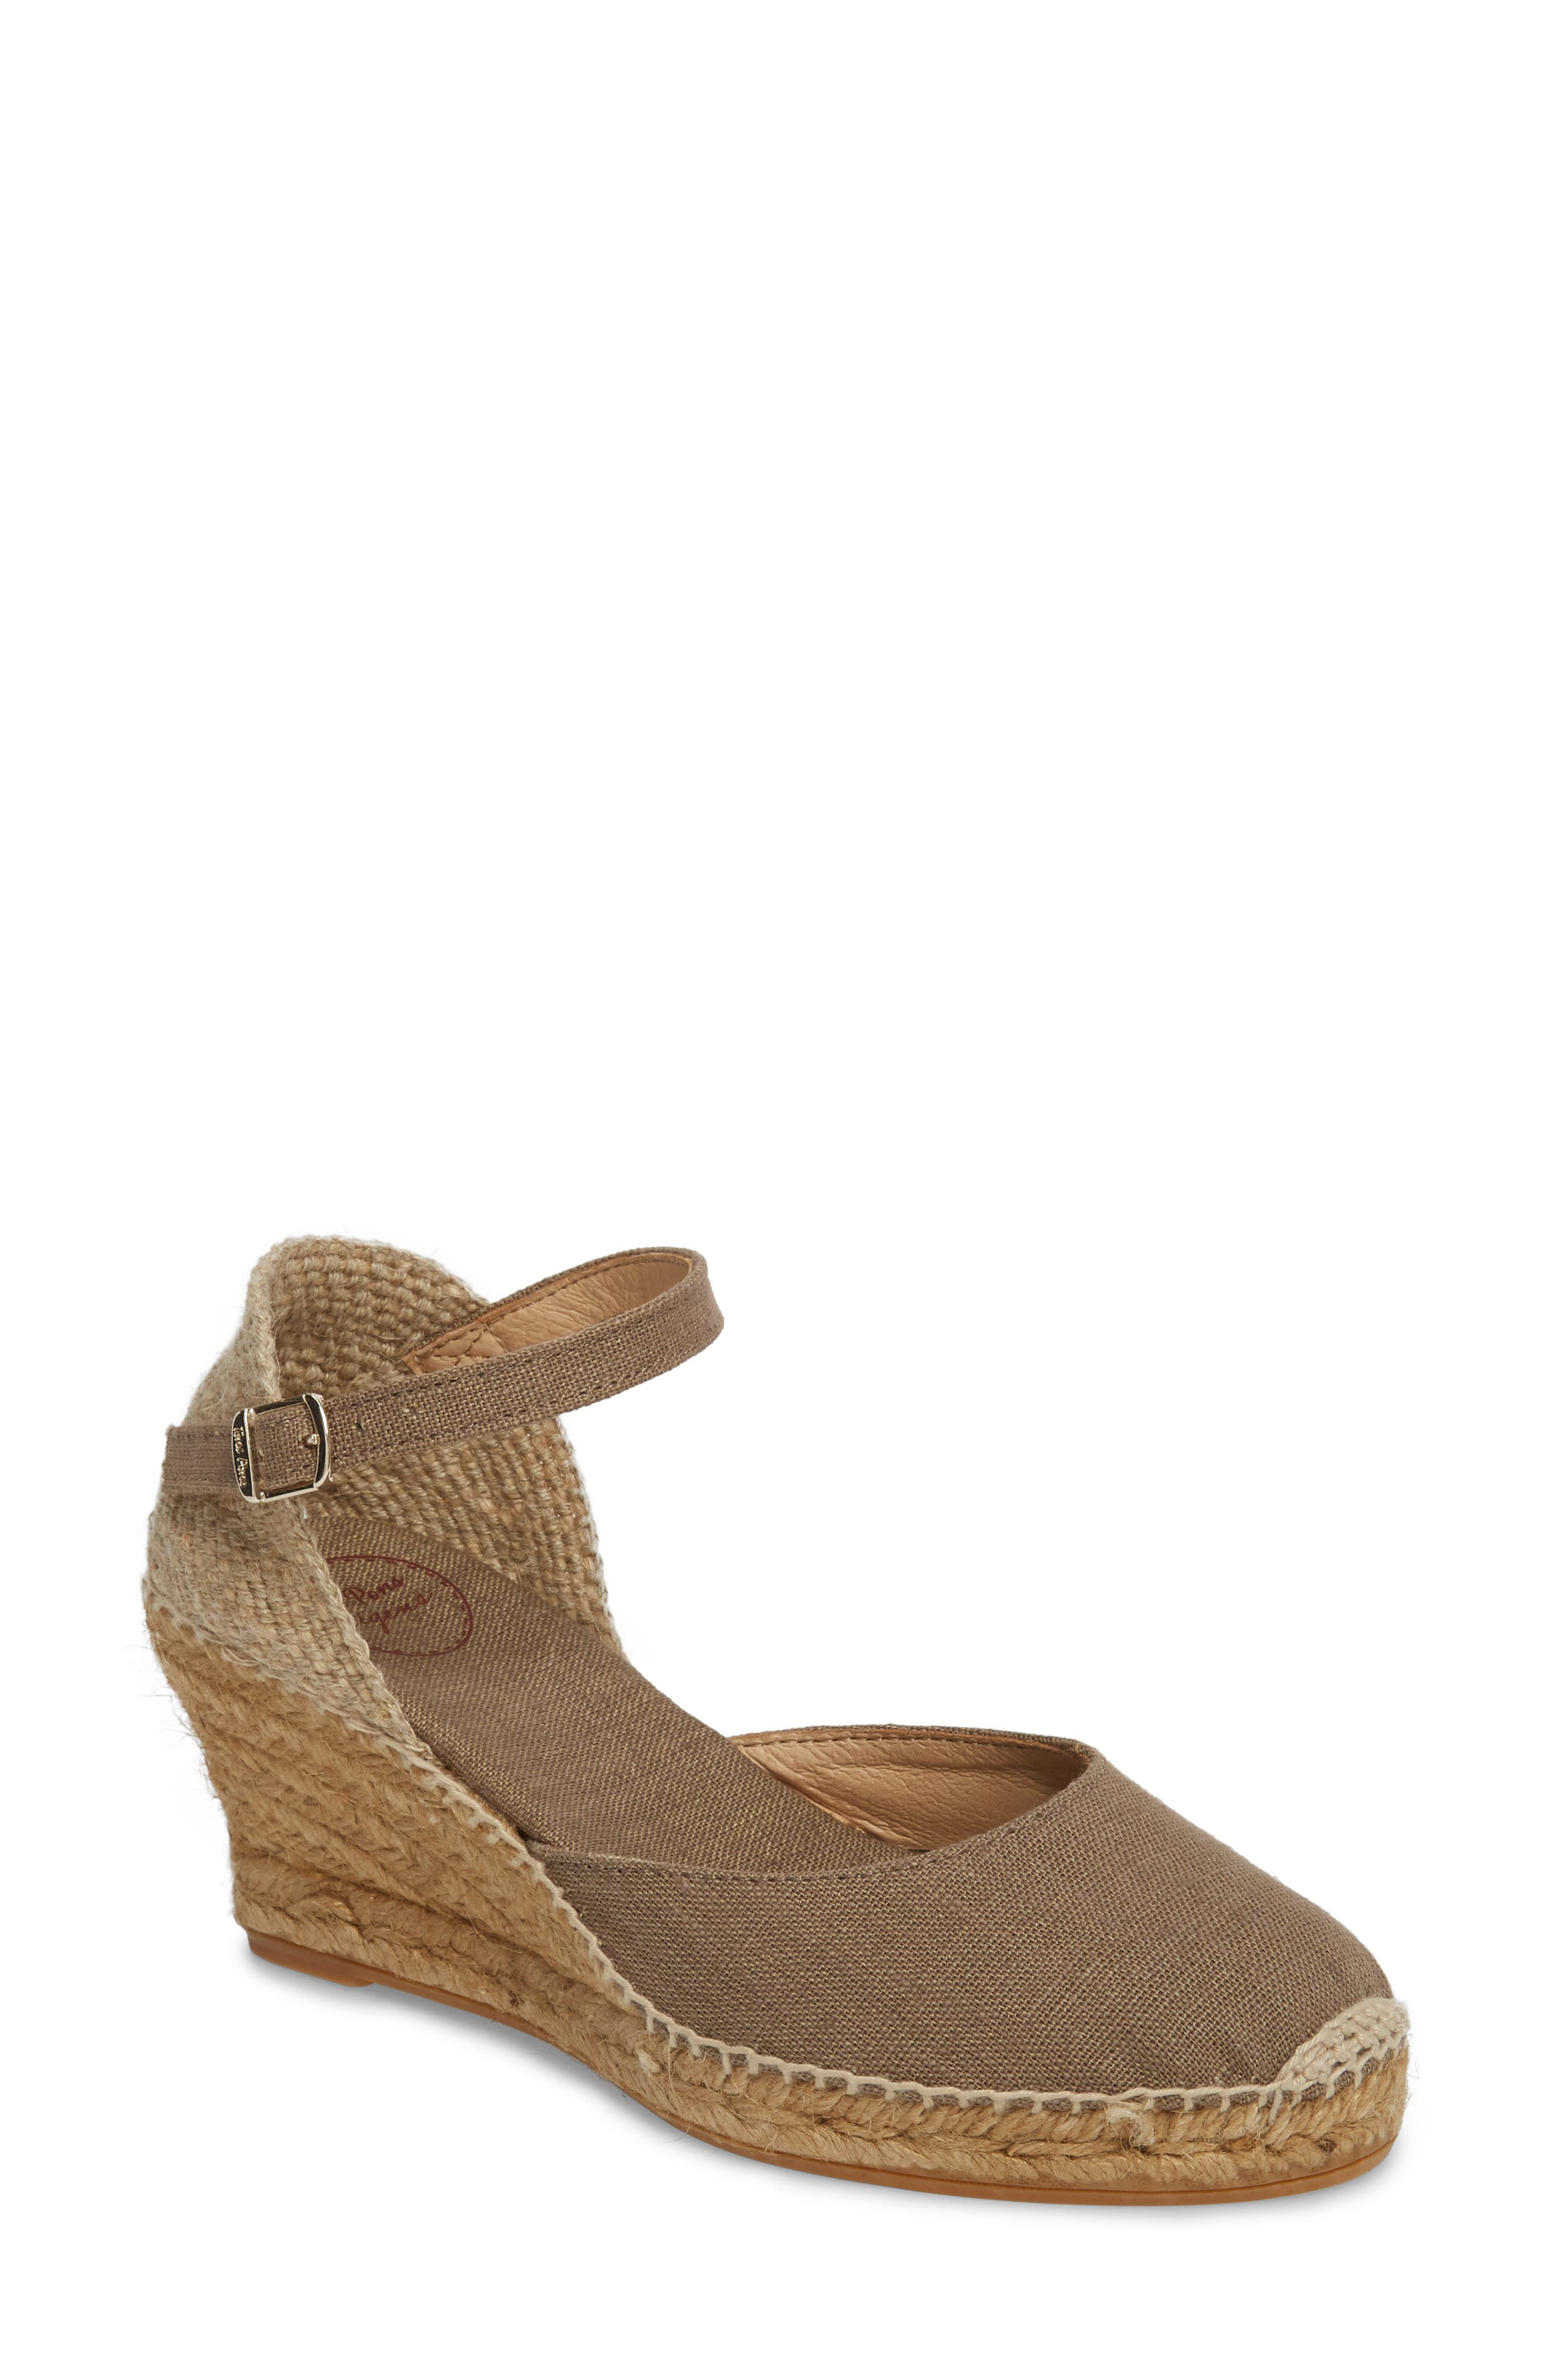 'Caldes' Linen Wedge Sandal,                         Main,                         color, TAUPE FABRIC